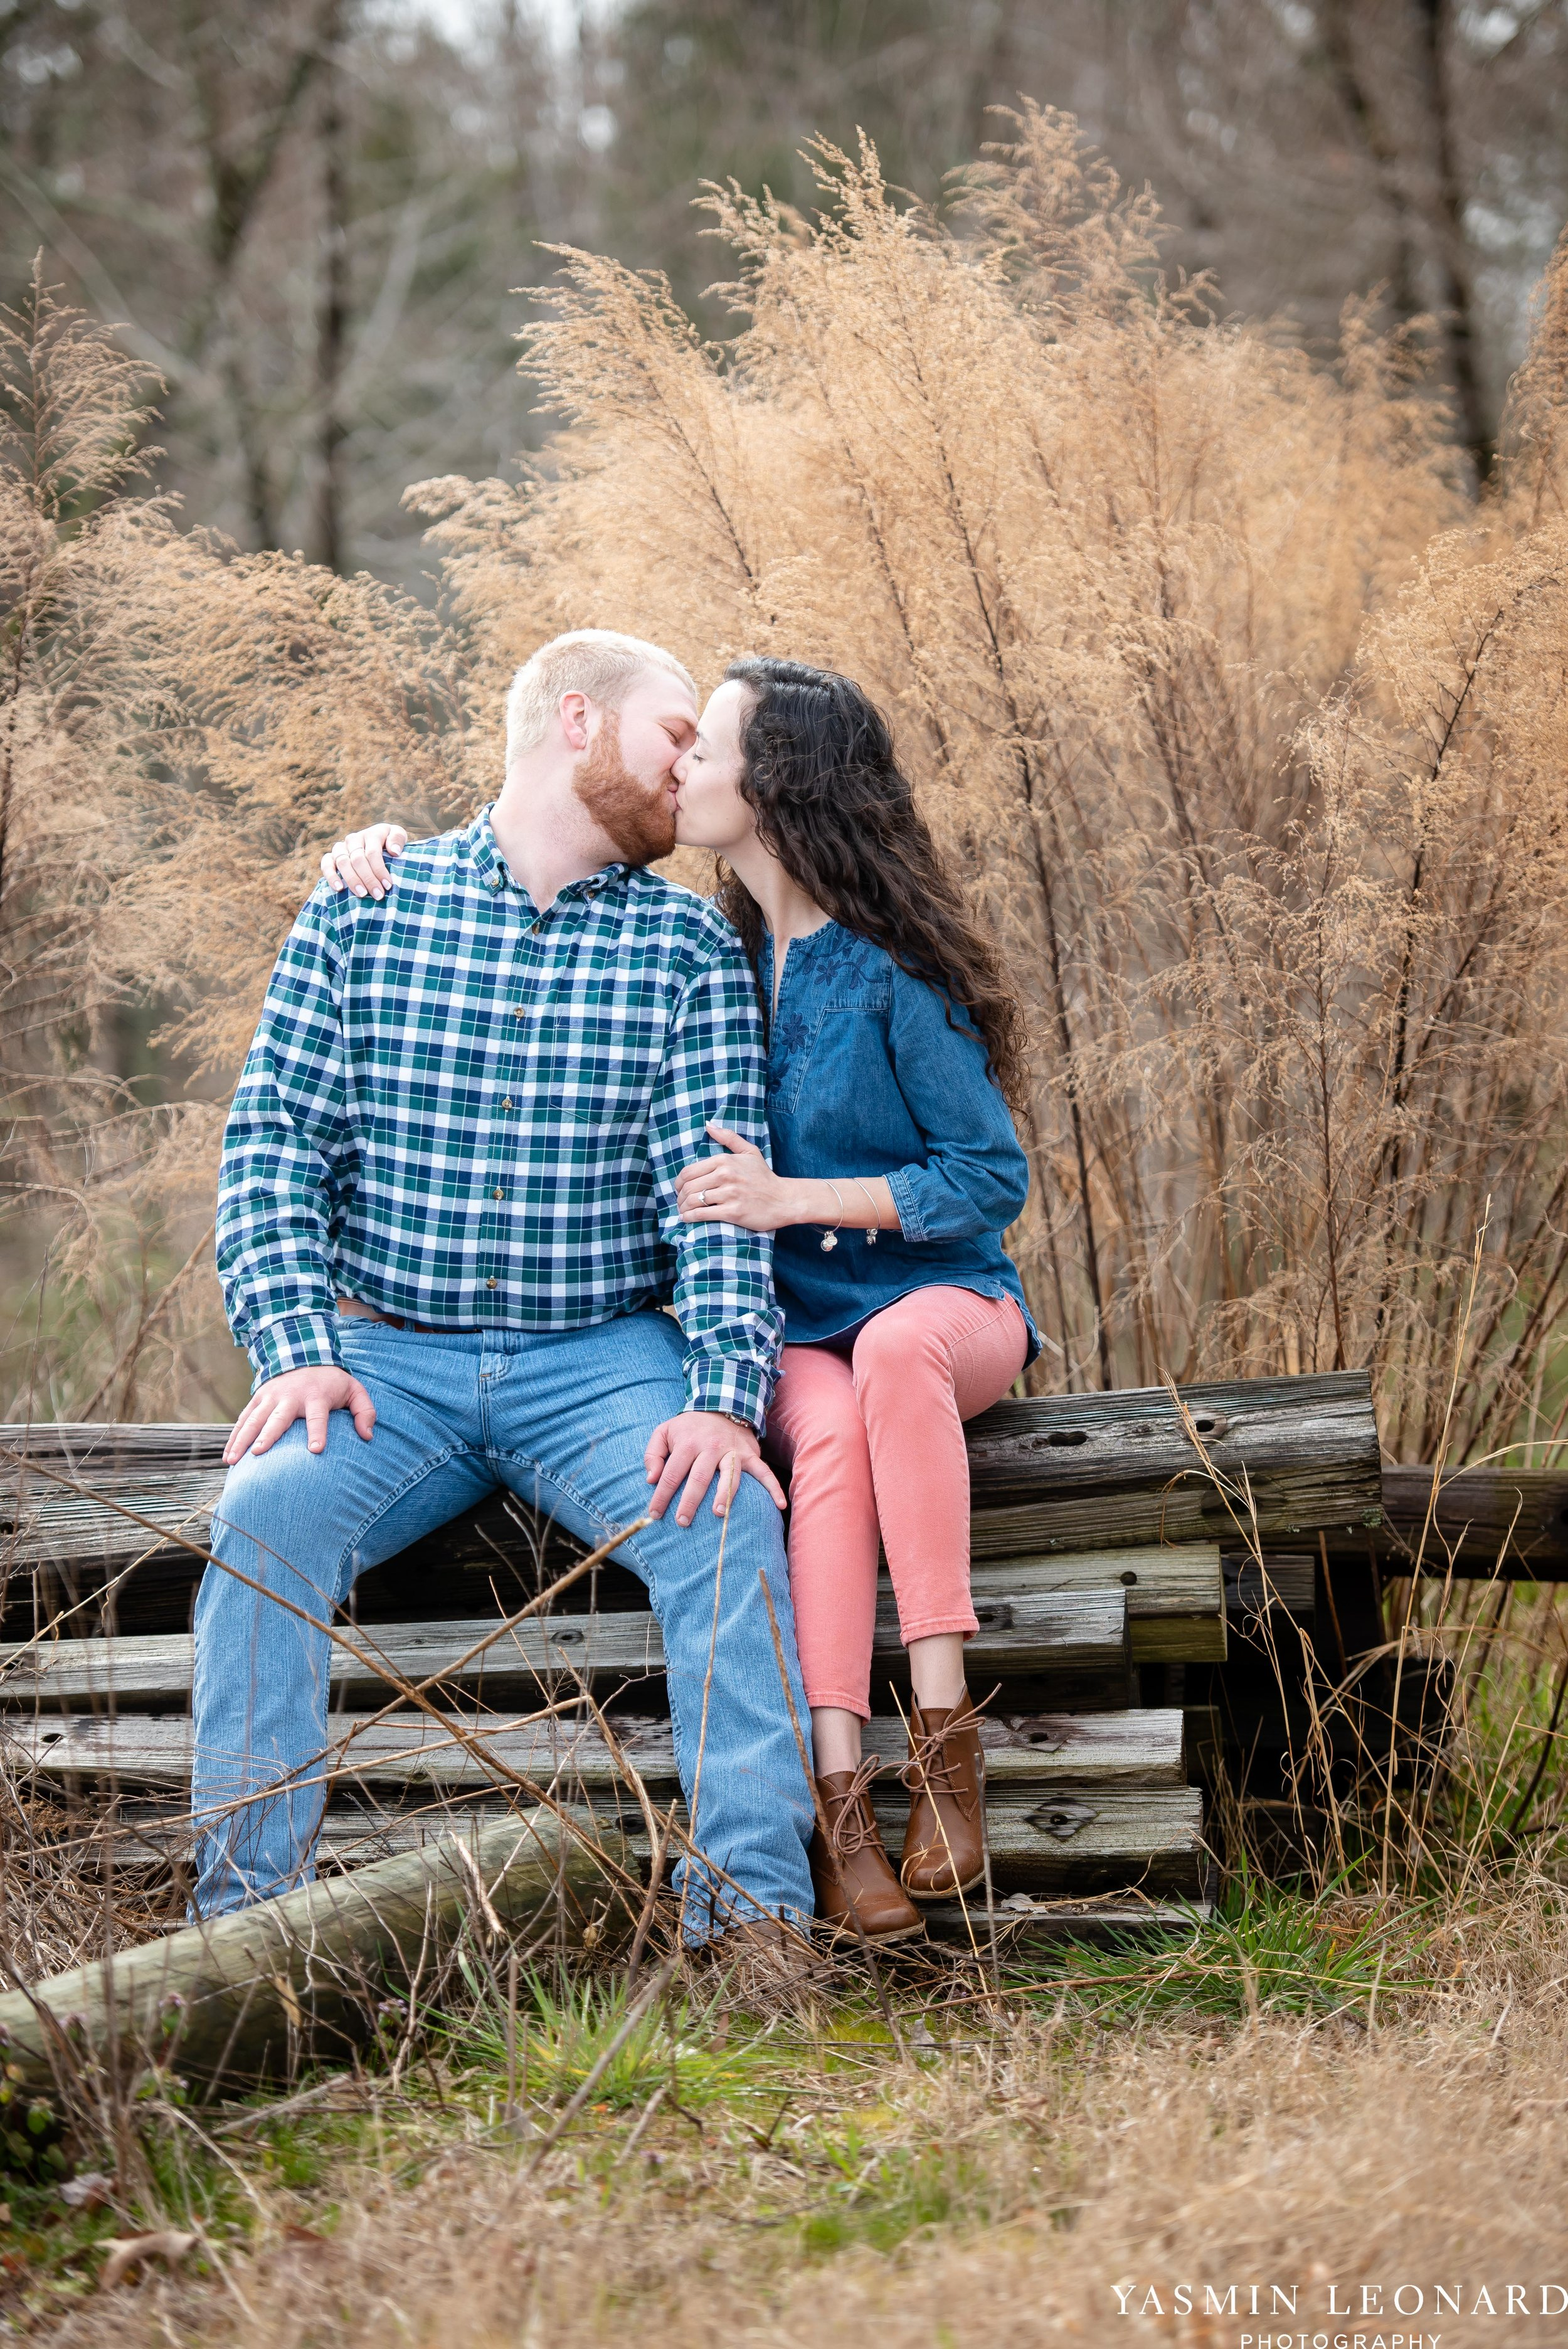 Wallburg Engagement Session - Country Engagement Session - High Point Engagement Session - Outdoor Engagement Session - Engagement Photos - Barn Engagement Photos - NC Photographer - High Point Photographer-6.jpg